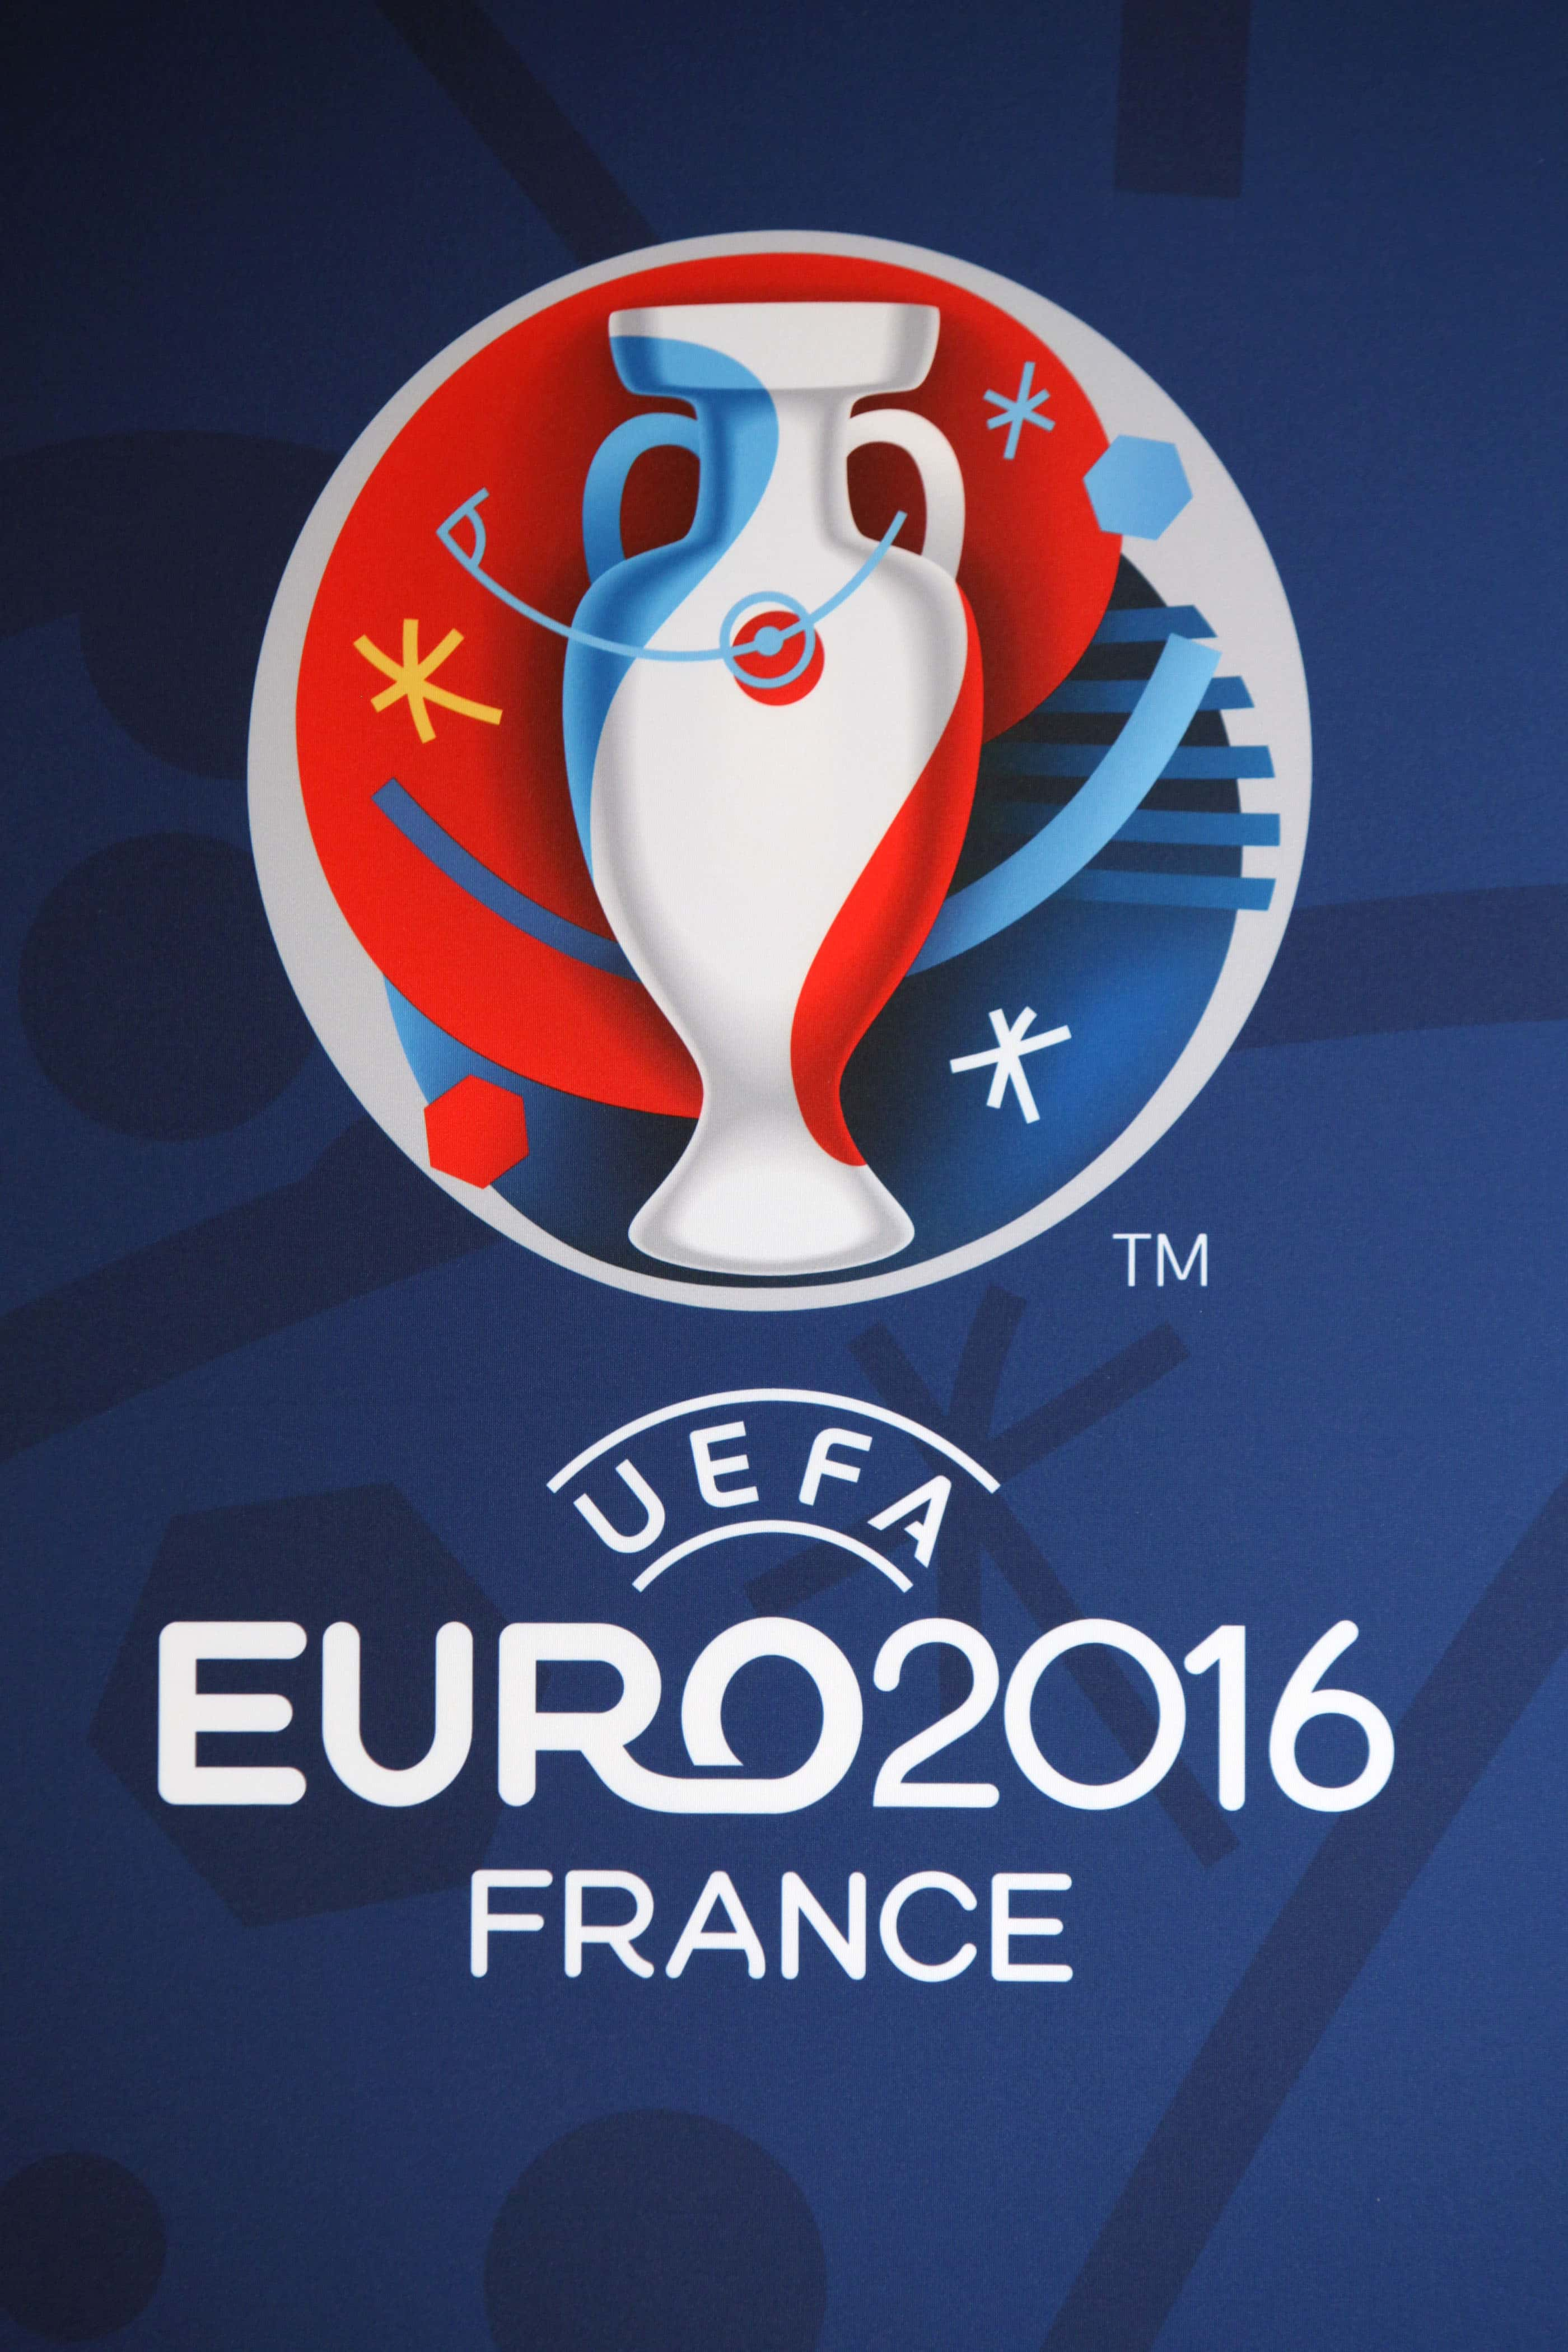 The logo of the EURO2016 soccer tournament is displayed, in Paris, Wednesday, June 26, 2013. The Euro2016 will take place in France from June 10 to July 10 2016. (AP Photo/Thibault Camus)